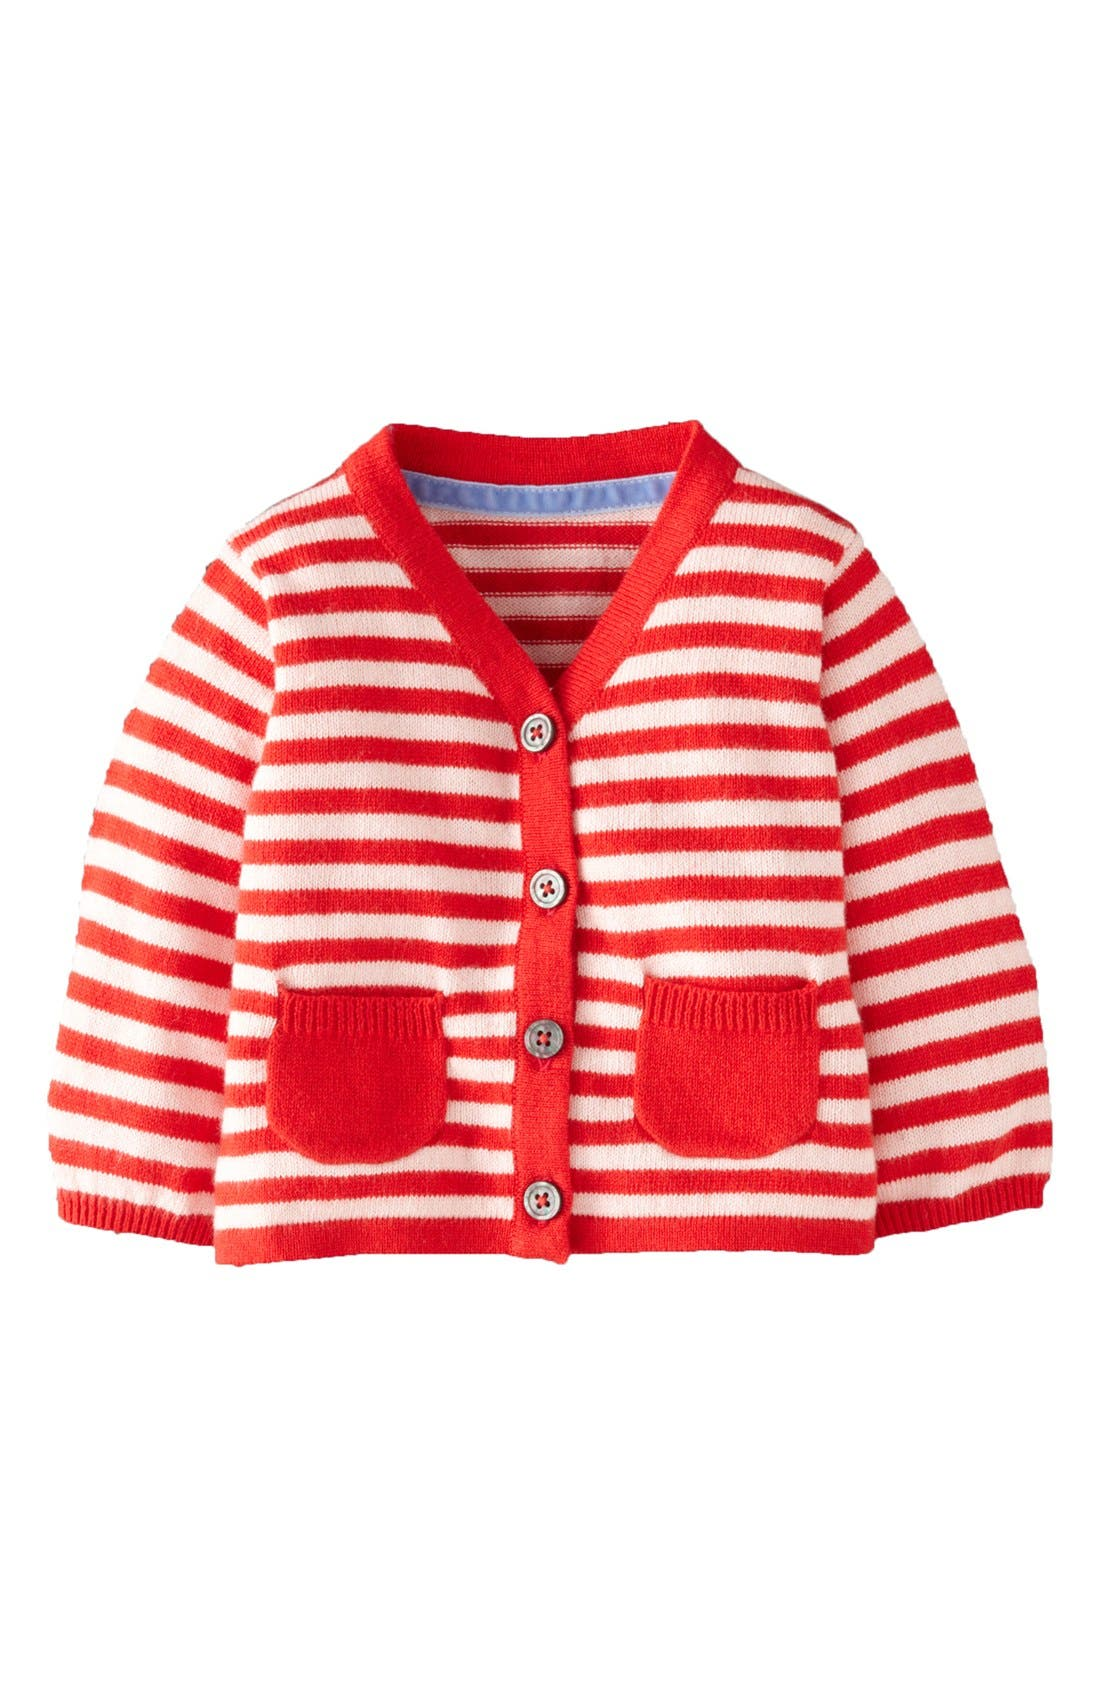 Alternate Image 1 Selected - Mini Boden 'Favorite' Cardigan (Baby Girls)